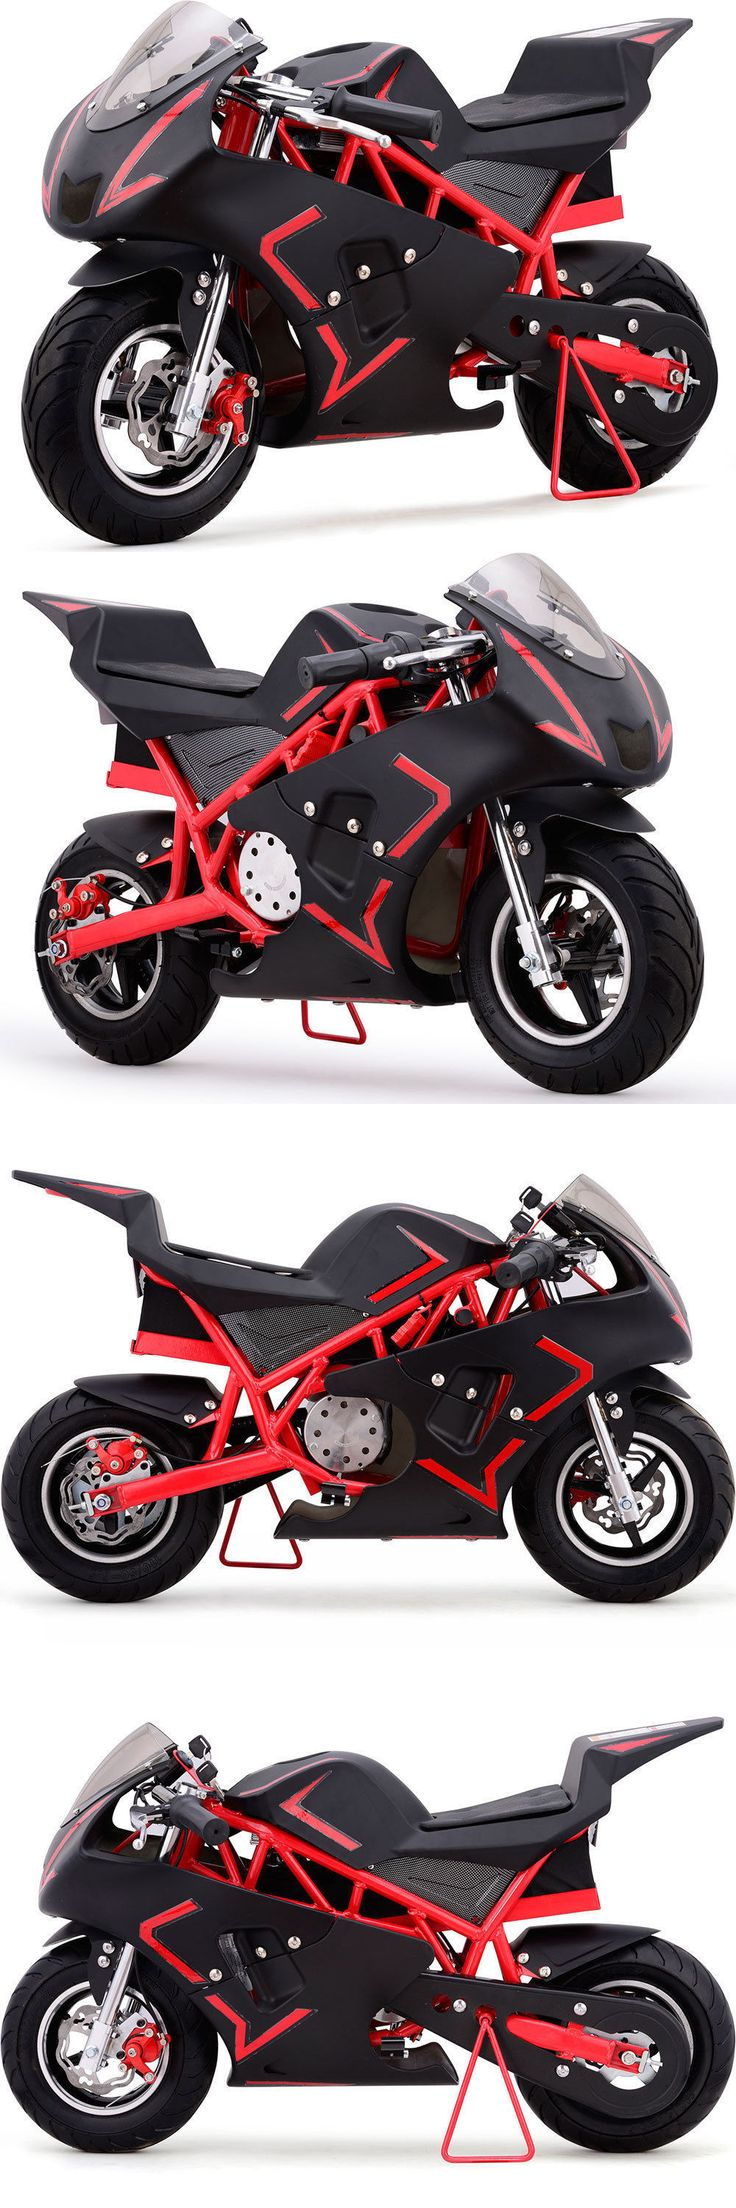 Gas Scooters 75211: Pocket Bike Mini Gas Powered 40Cc Ride On Red Motorcycle Boys Girls Youth New -> BUY IT NOW ONLY: $364.95 on eBay!